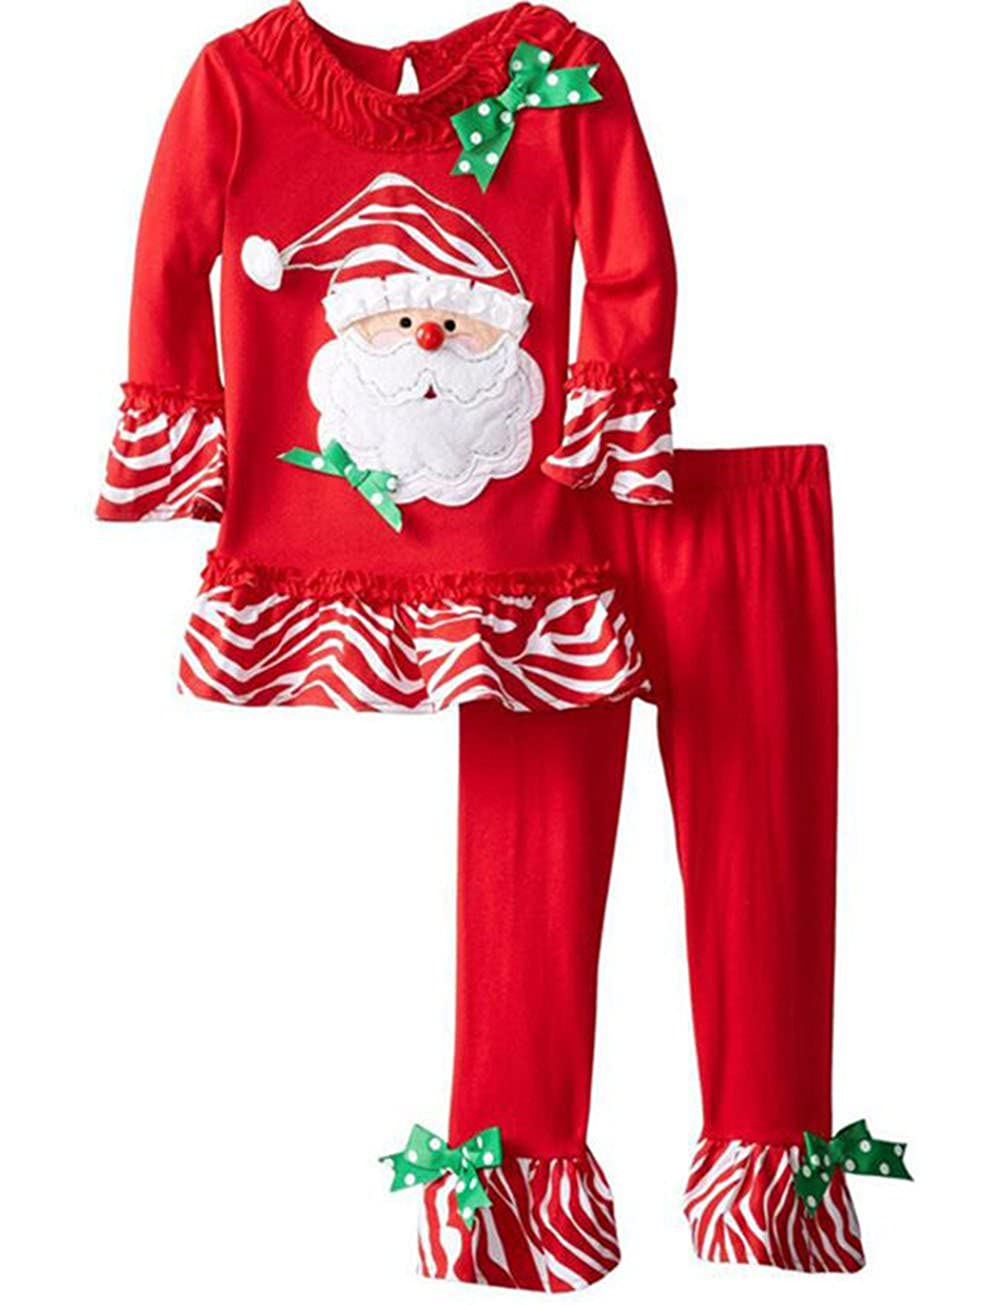 SUPEYA Toddler Baby Girls Christmas Outfits Santa Claus Print Tops Pants 2Pcs Set